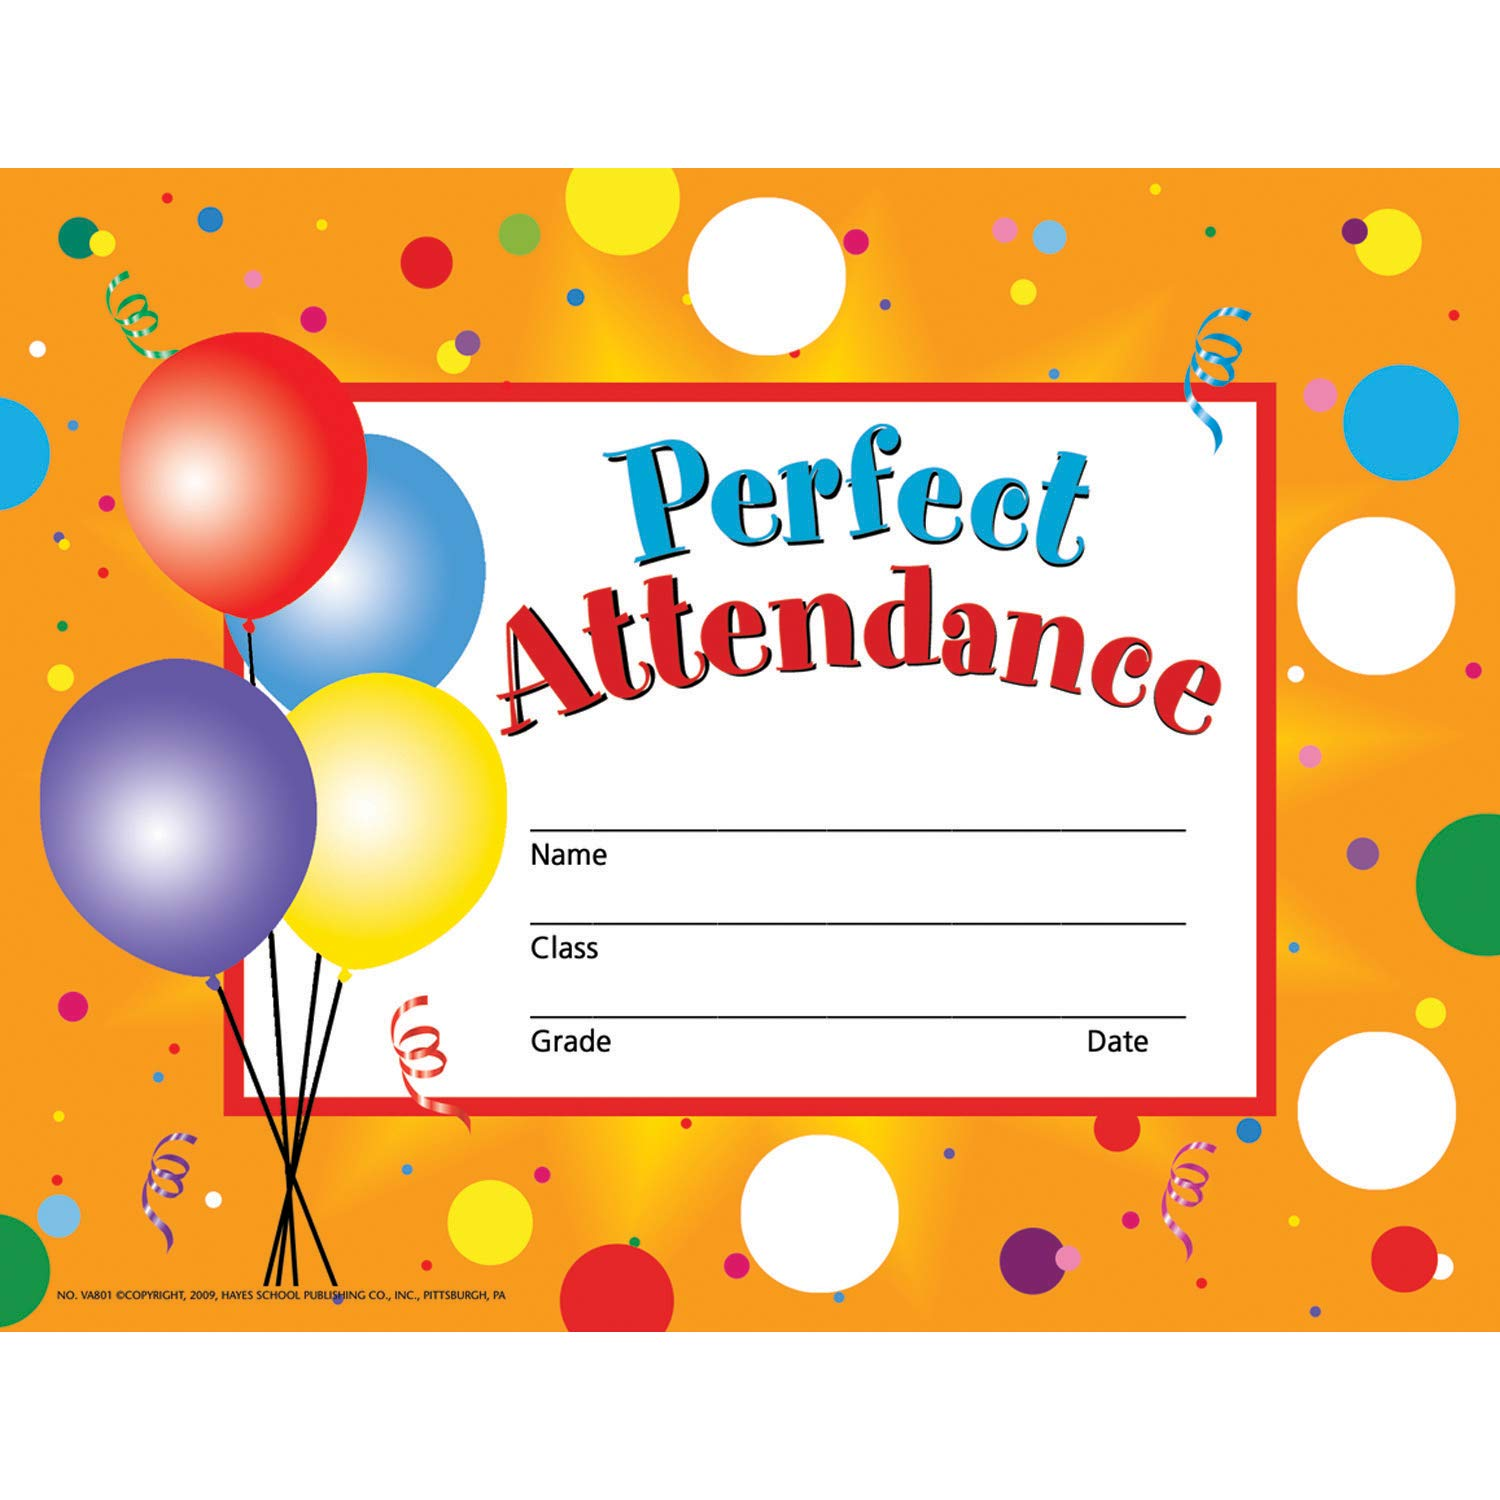 Hayes H-VA801BN Perfect Attendance Certificates & Reward Seals, 8.5'' x 11'', 1140 Per Pack, 6 Packs by Hayes